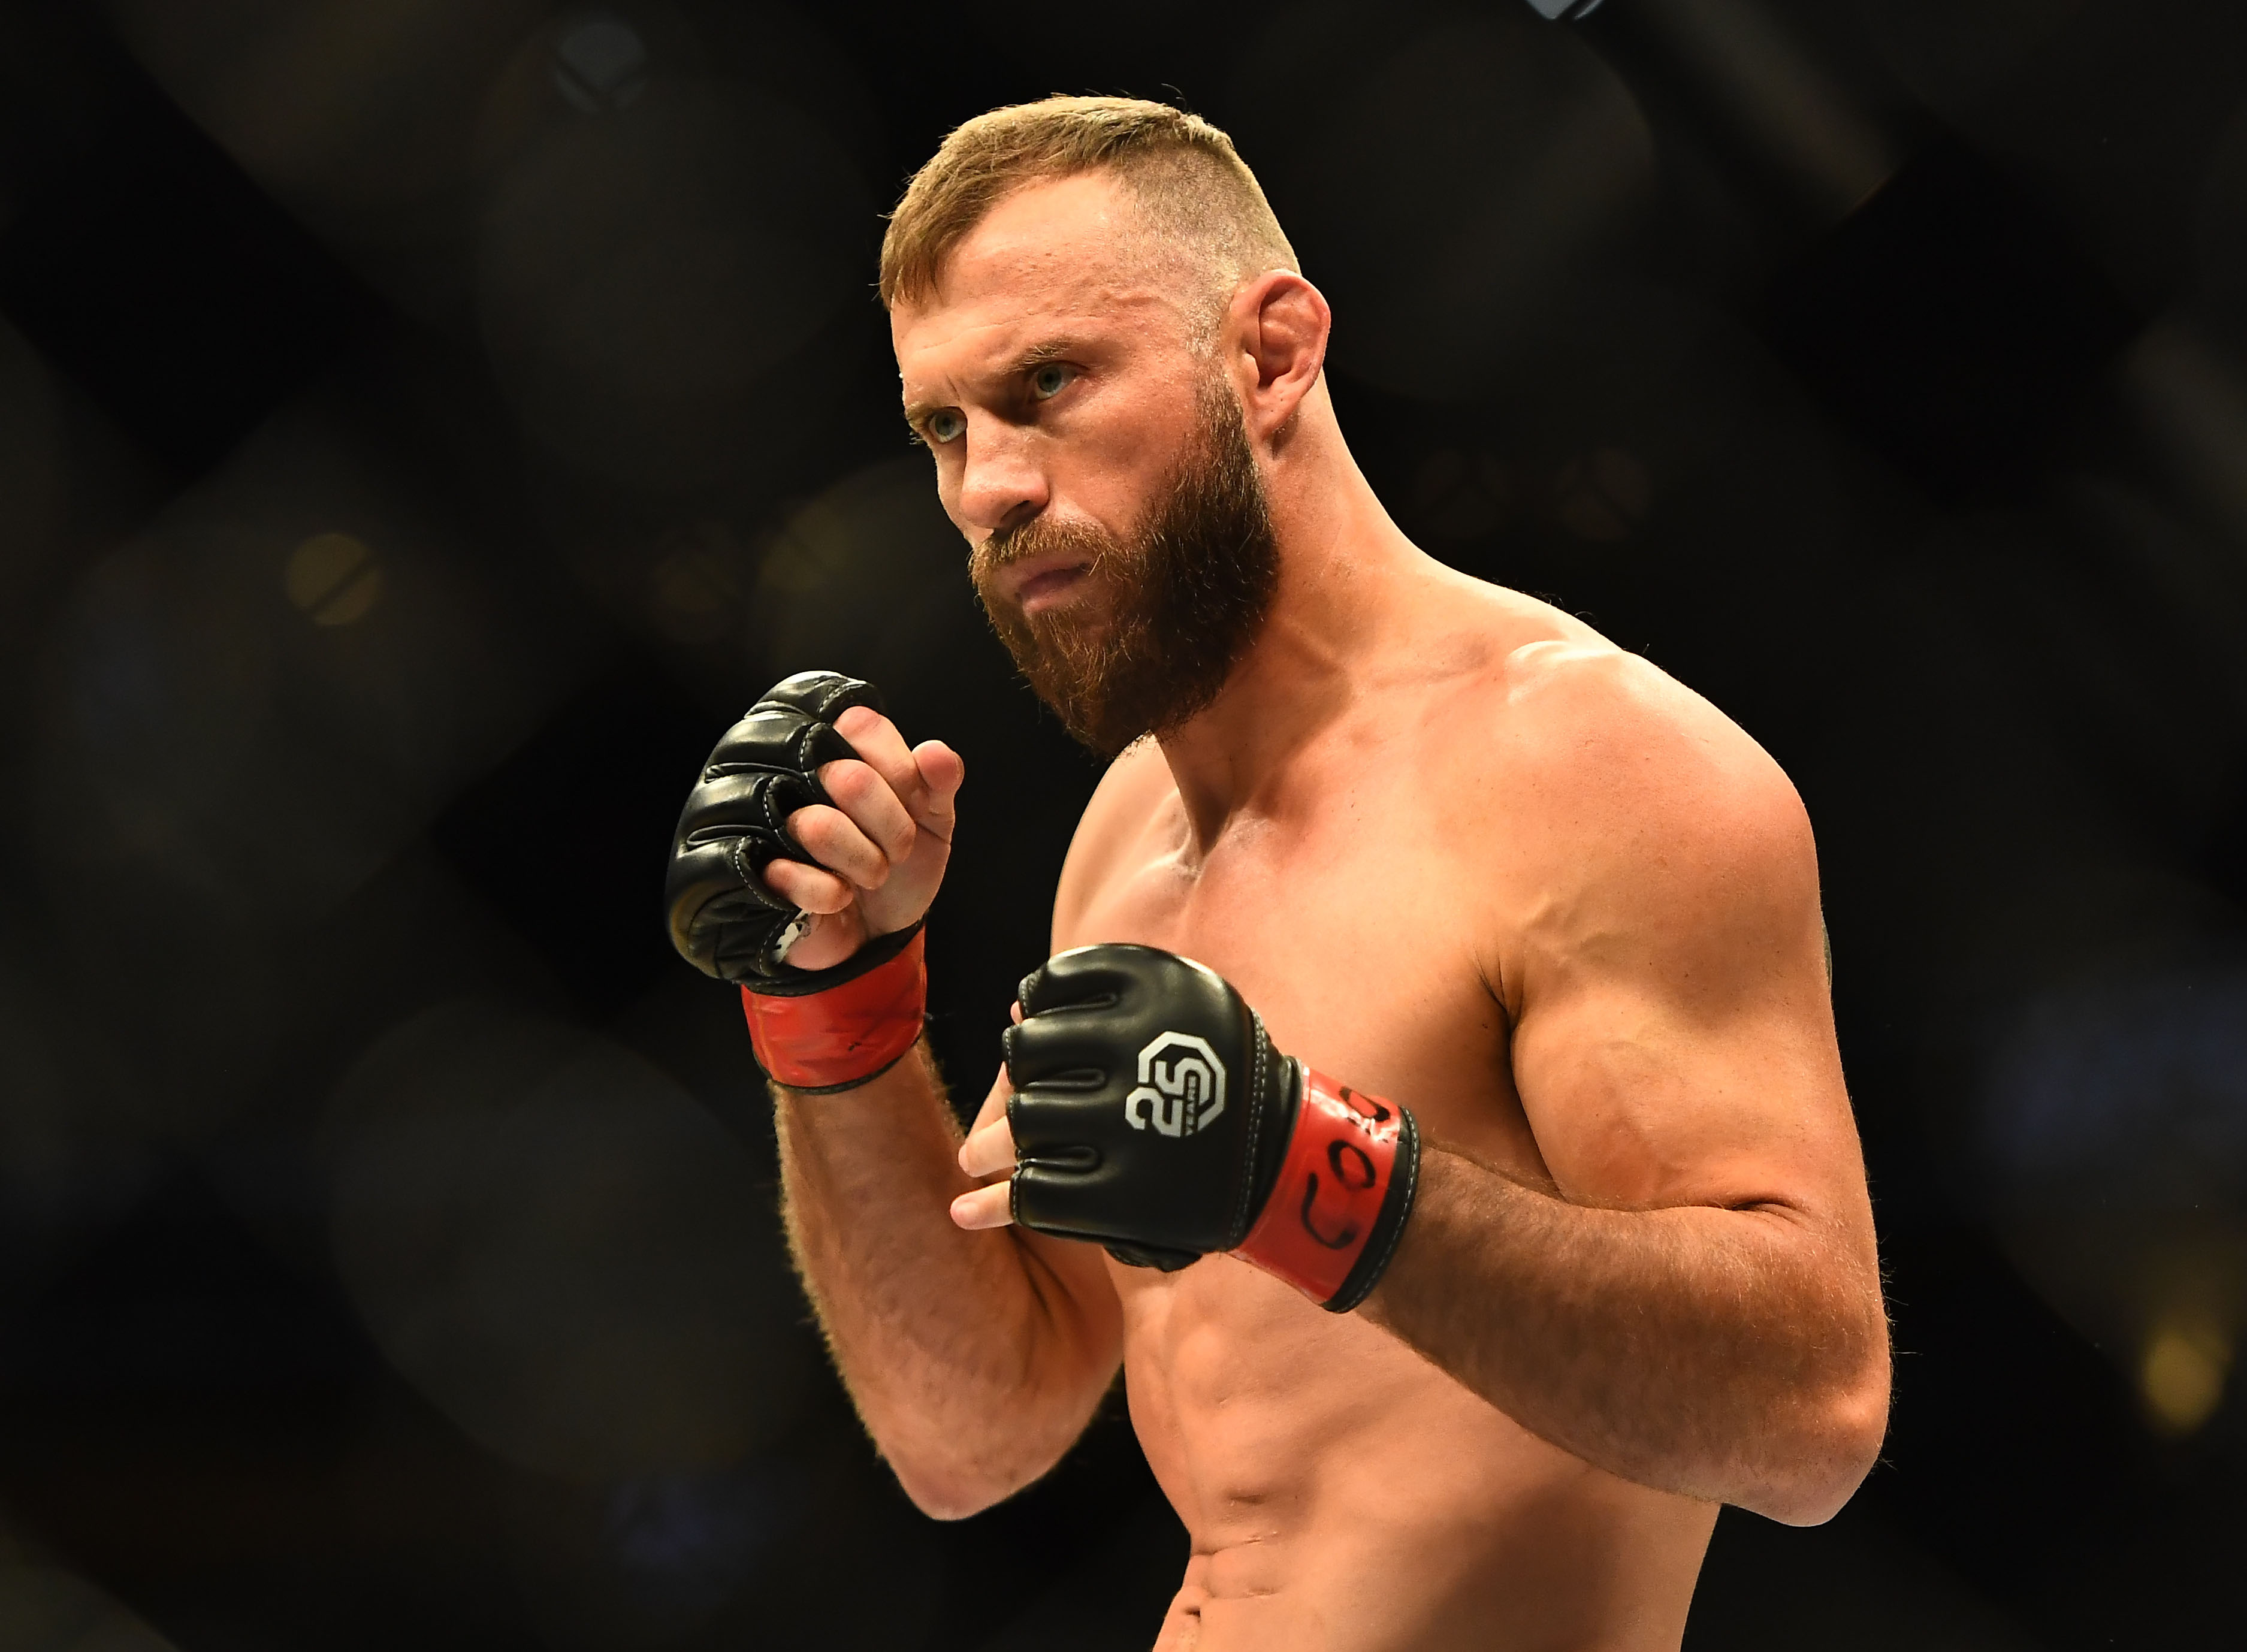 Donald Cerrone revealed his potential fight with Conor McGregor is off as the Irish,am demands he is the main-event